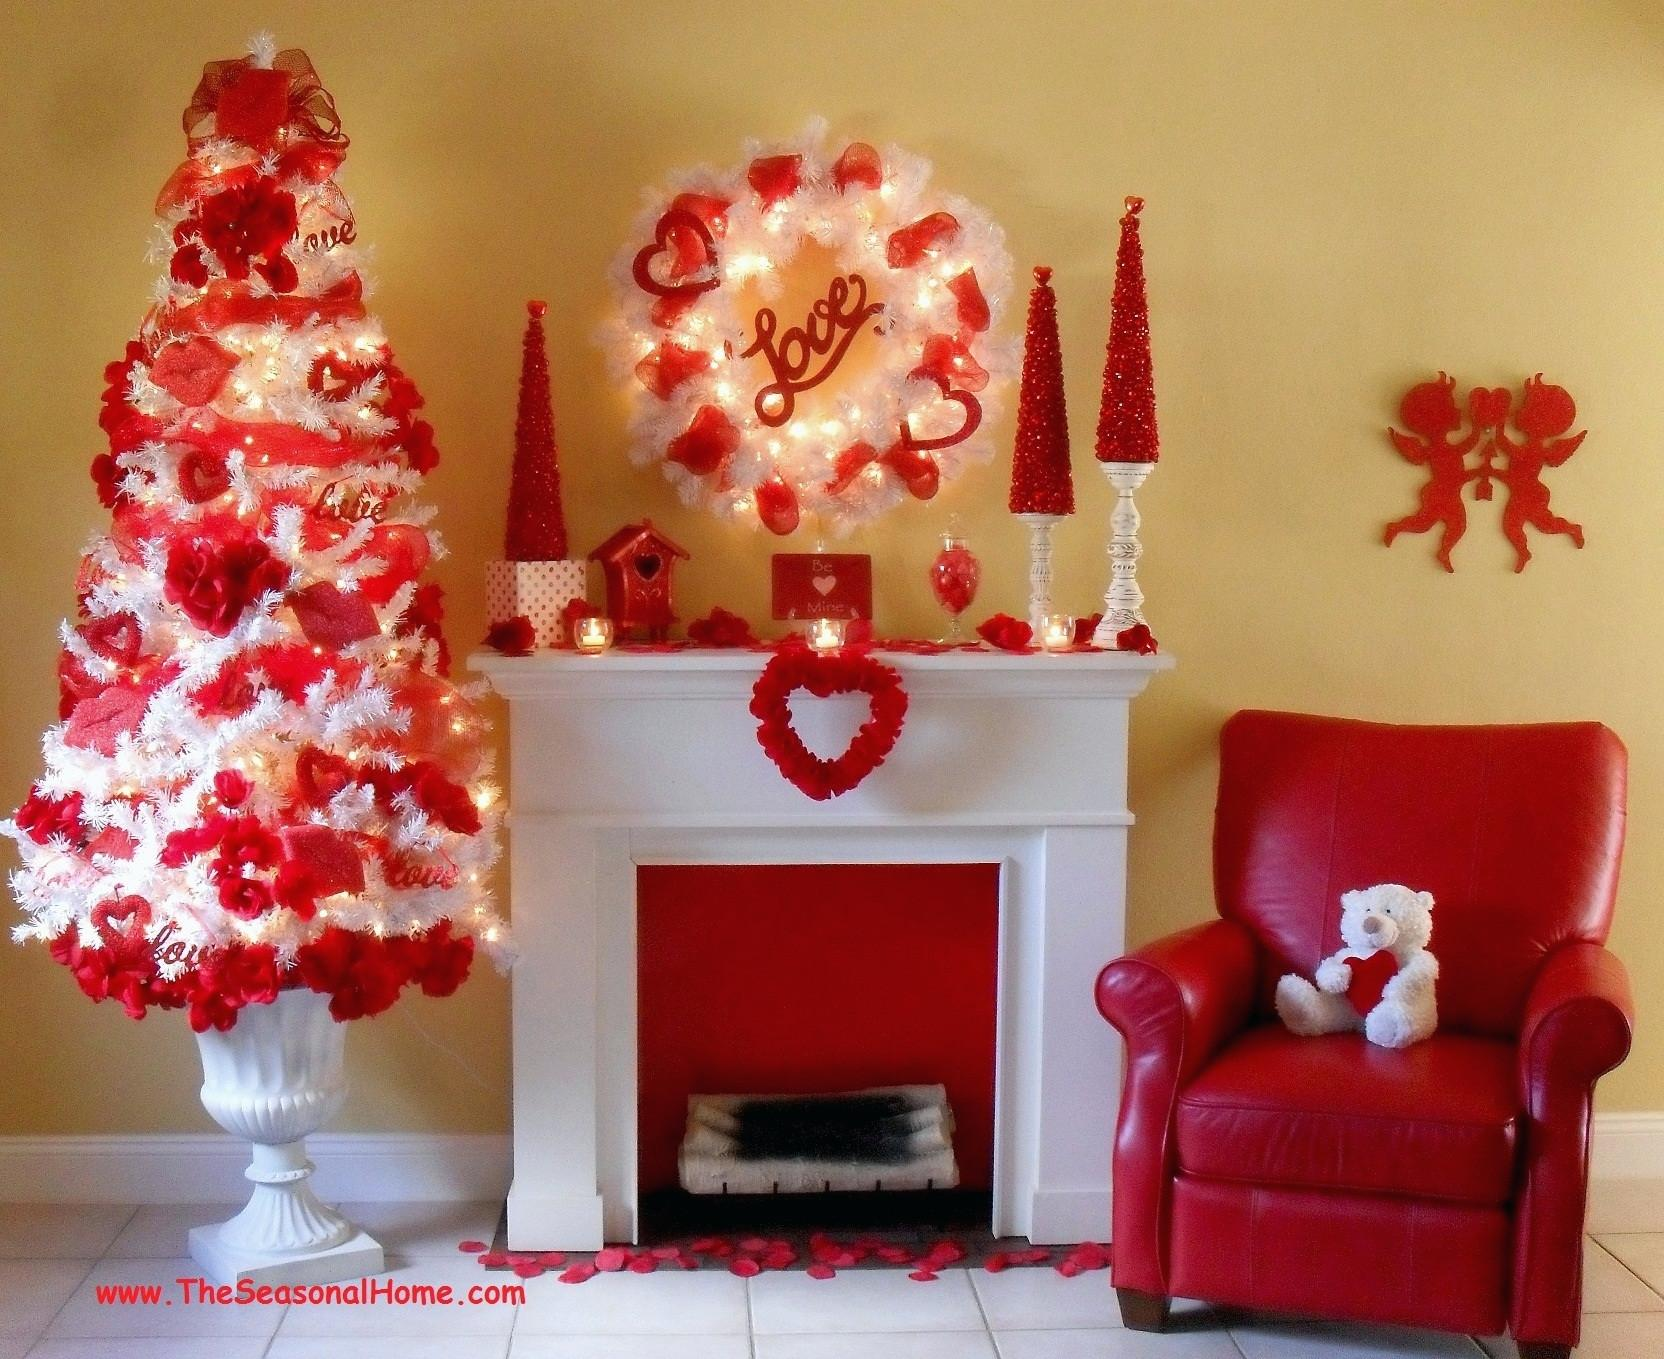 Lovable Diy Valentine Decor Ideas Should Craft